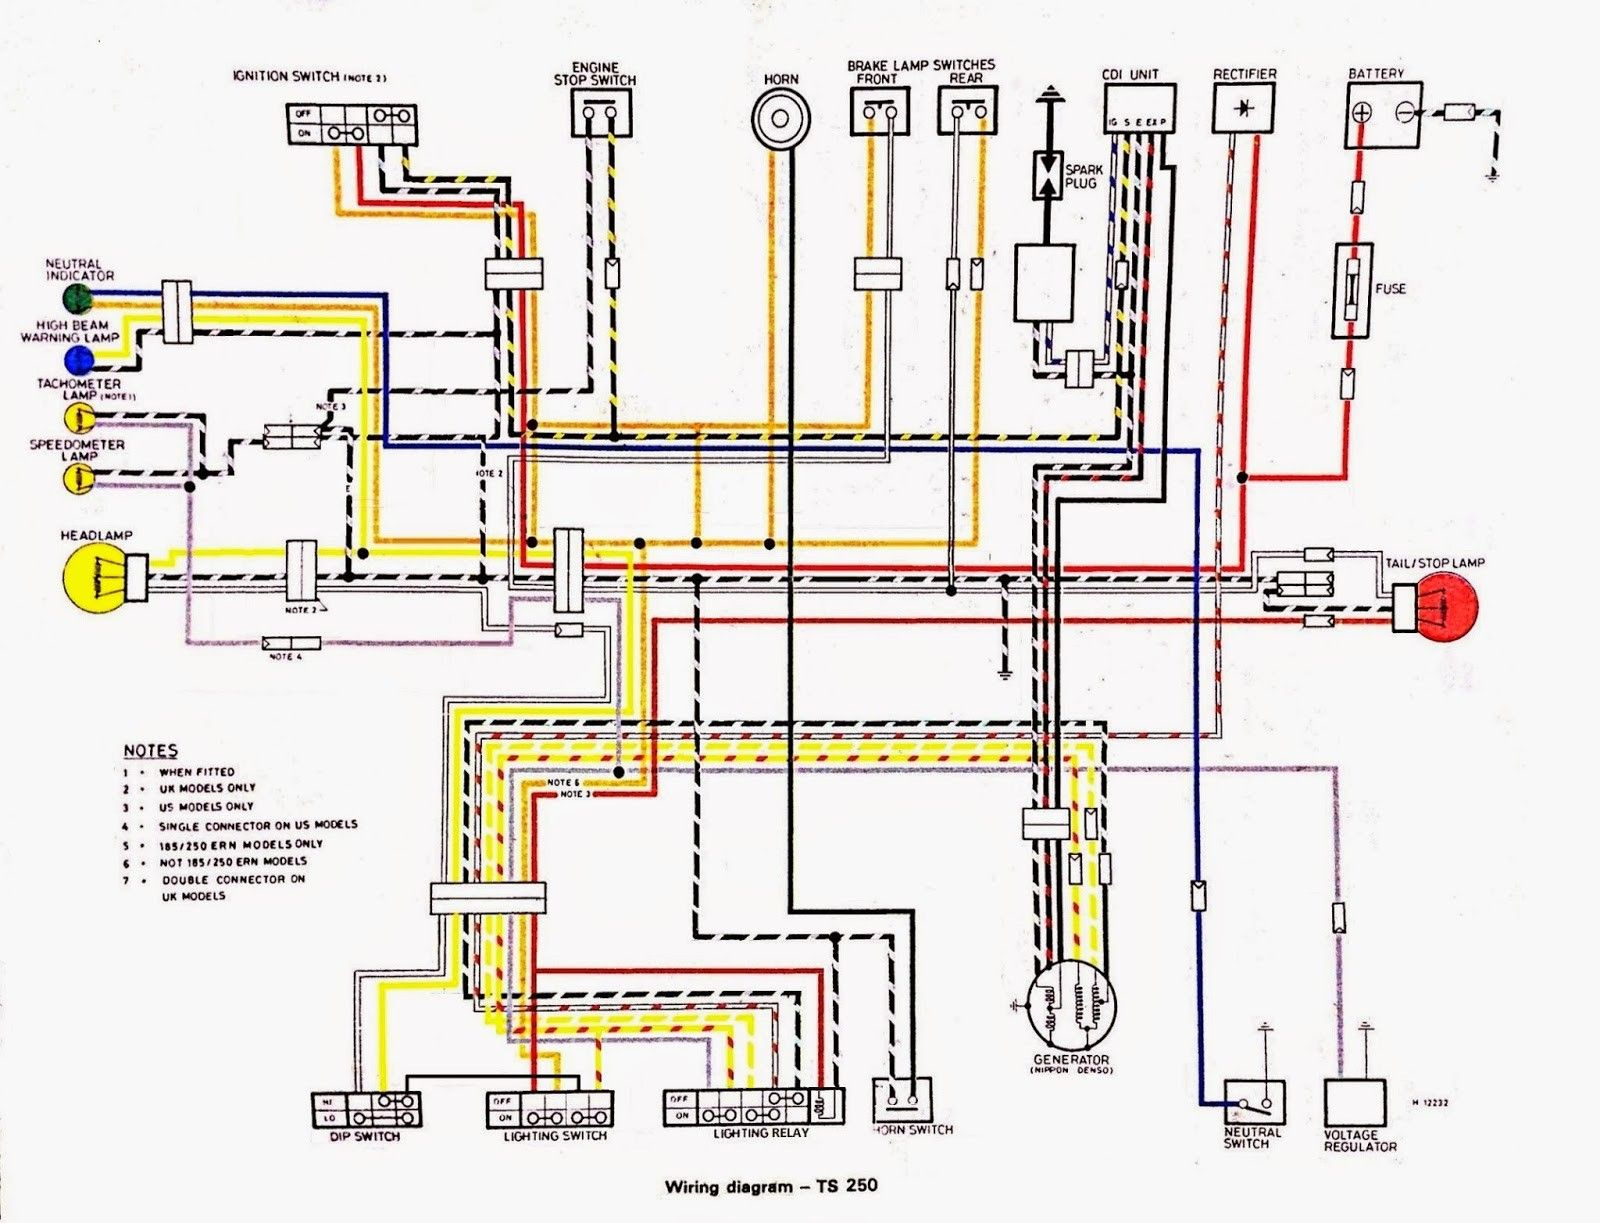 Fresh Wiring Diagram Suzuki Quadrunner #diagrams #digramssample  #diagramimages #wiringdiagramsample #wiringdiagram | Diagram, Suzuki dirt  bikes, Floor plansPinterest